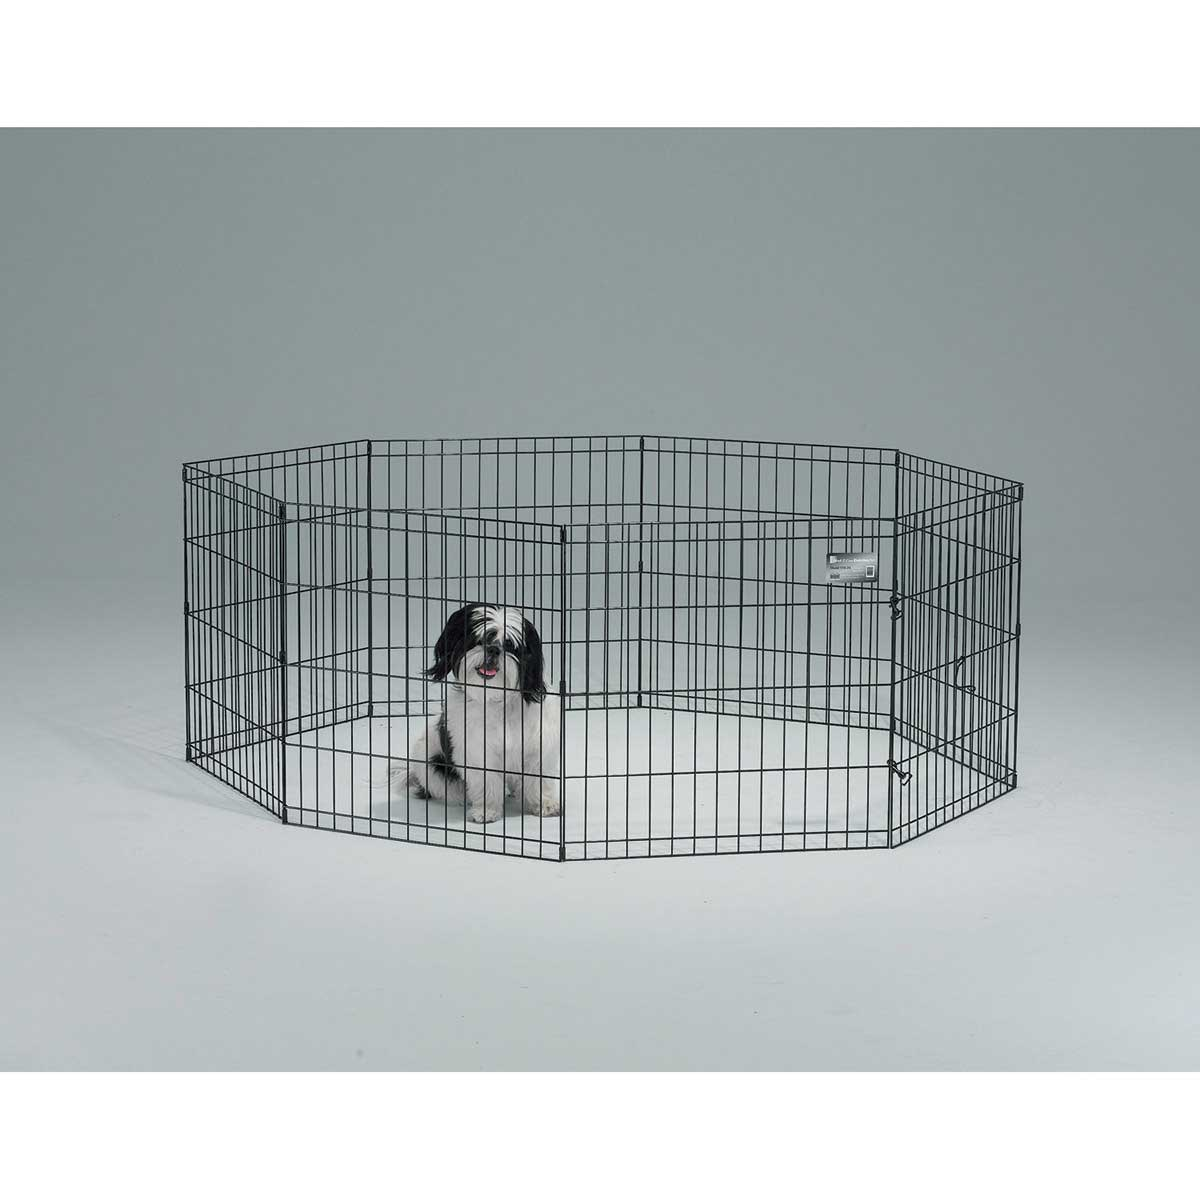 Black Finish Midwest Exercise Pen - 42 inch High 8 Panels Without Door